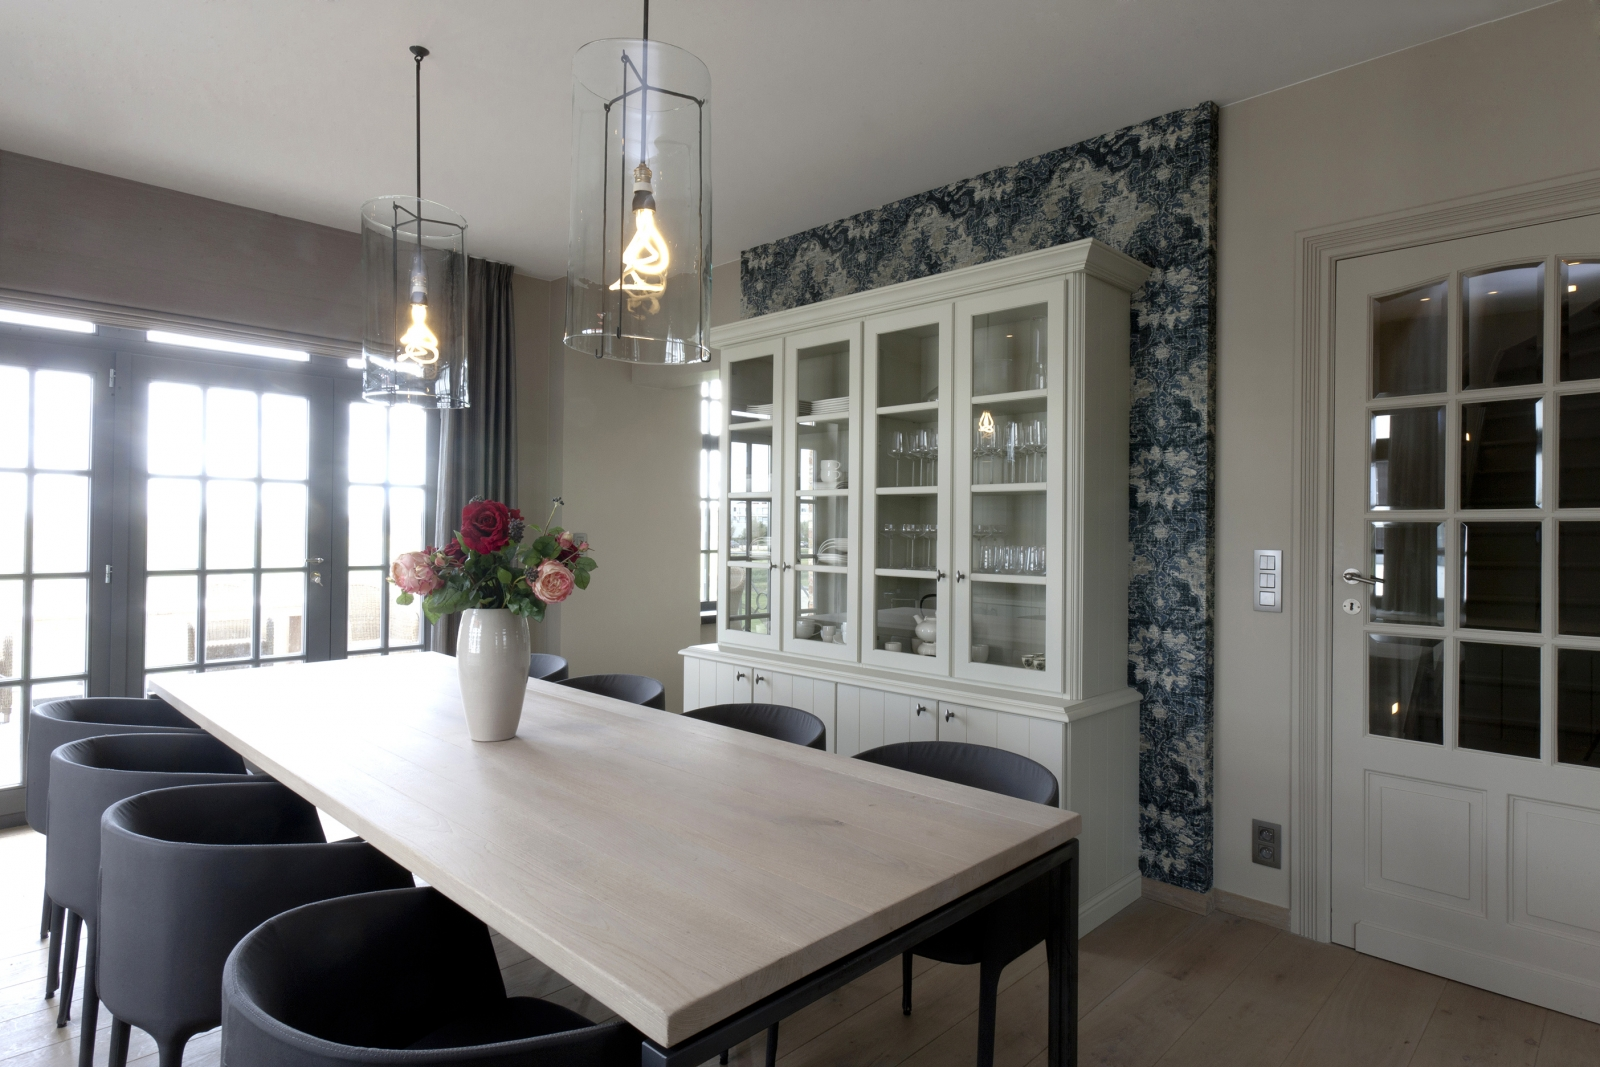 Claeys verbeke kleuradvies for Interieur kleuradvies